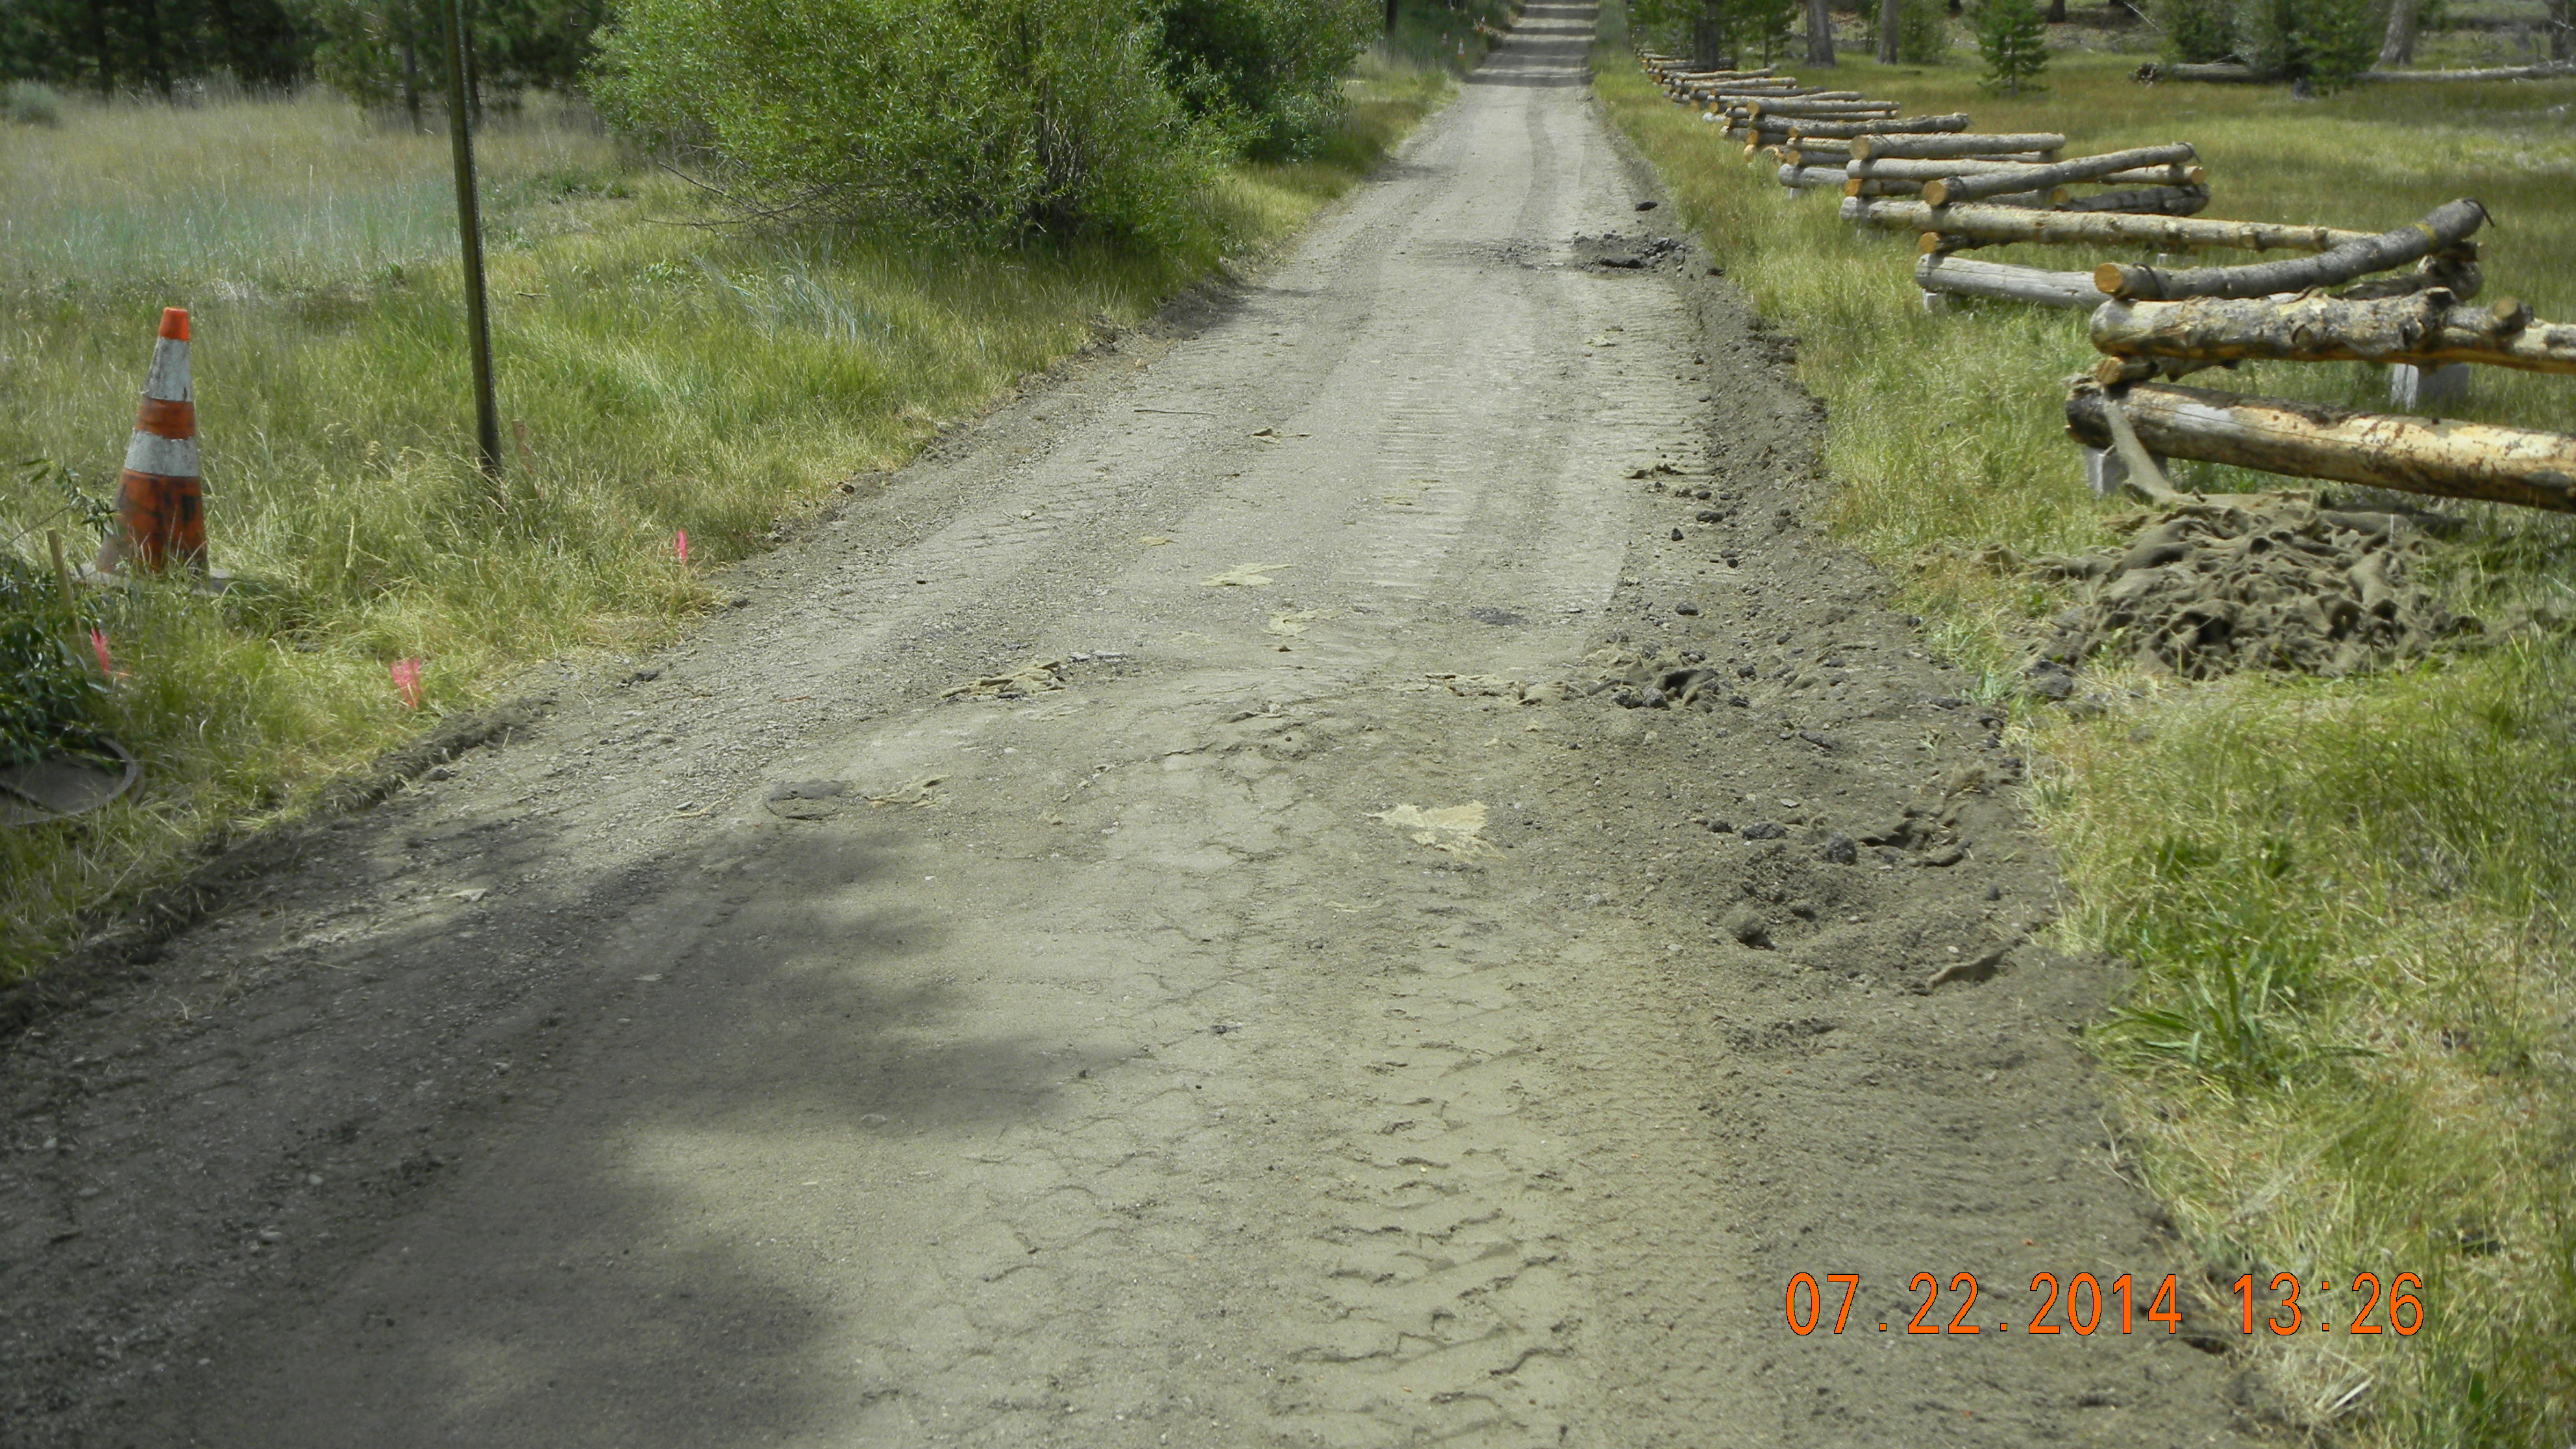 Dirt road with cone